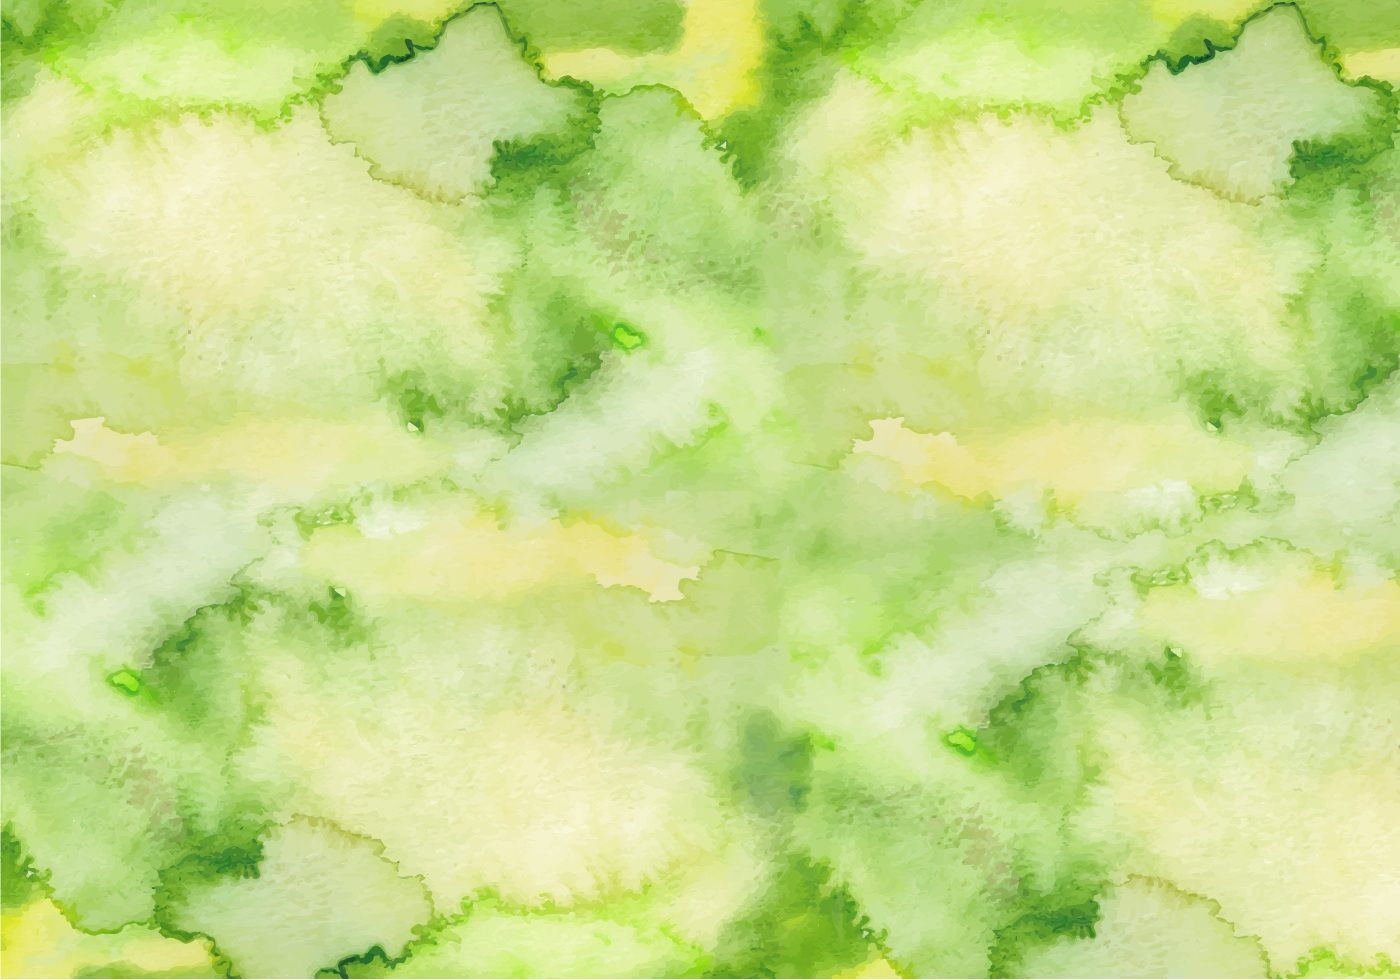 Green Watercolor Texture Green Hand Draw Aquarelle Background